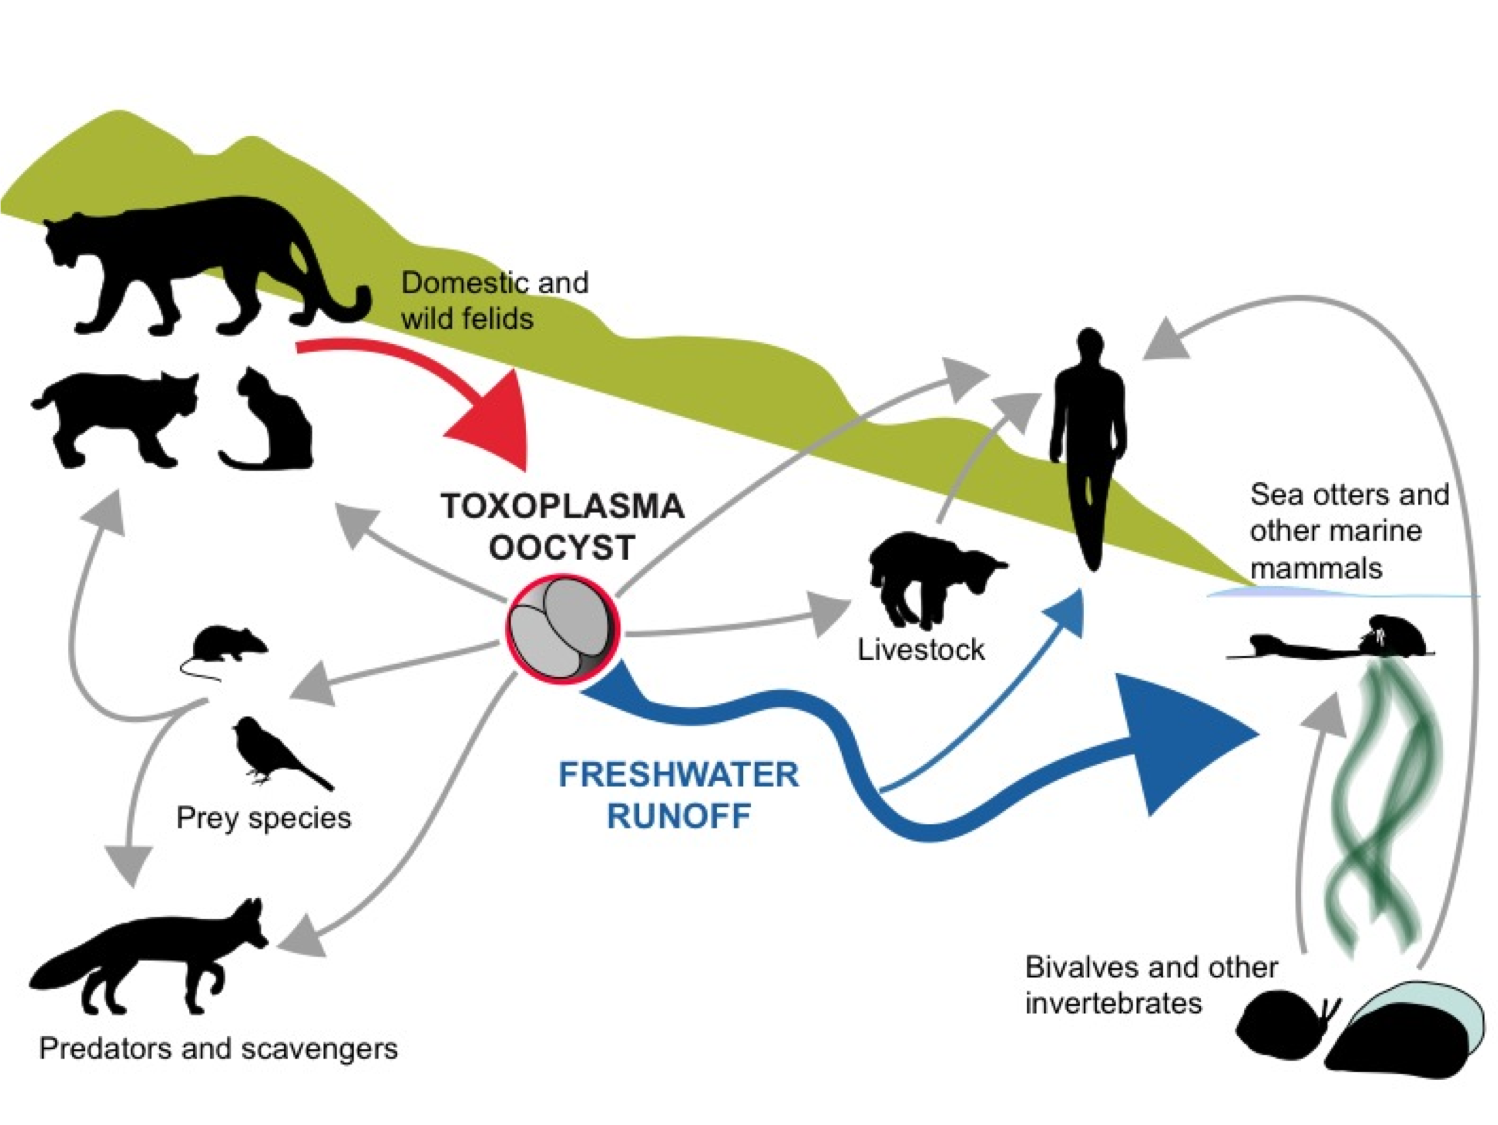 Here you see Toxoplasma gondii's complex journey from prey species to cats to the sea (or to humans or livestock). Oocysts are key ingredient in that transport.